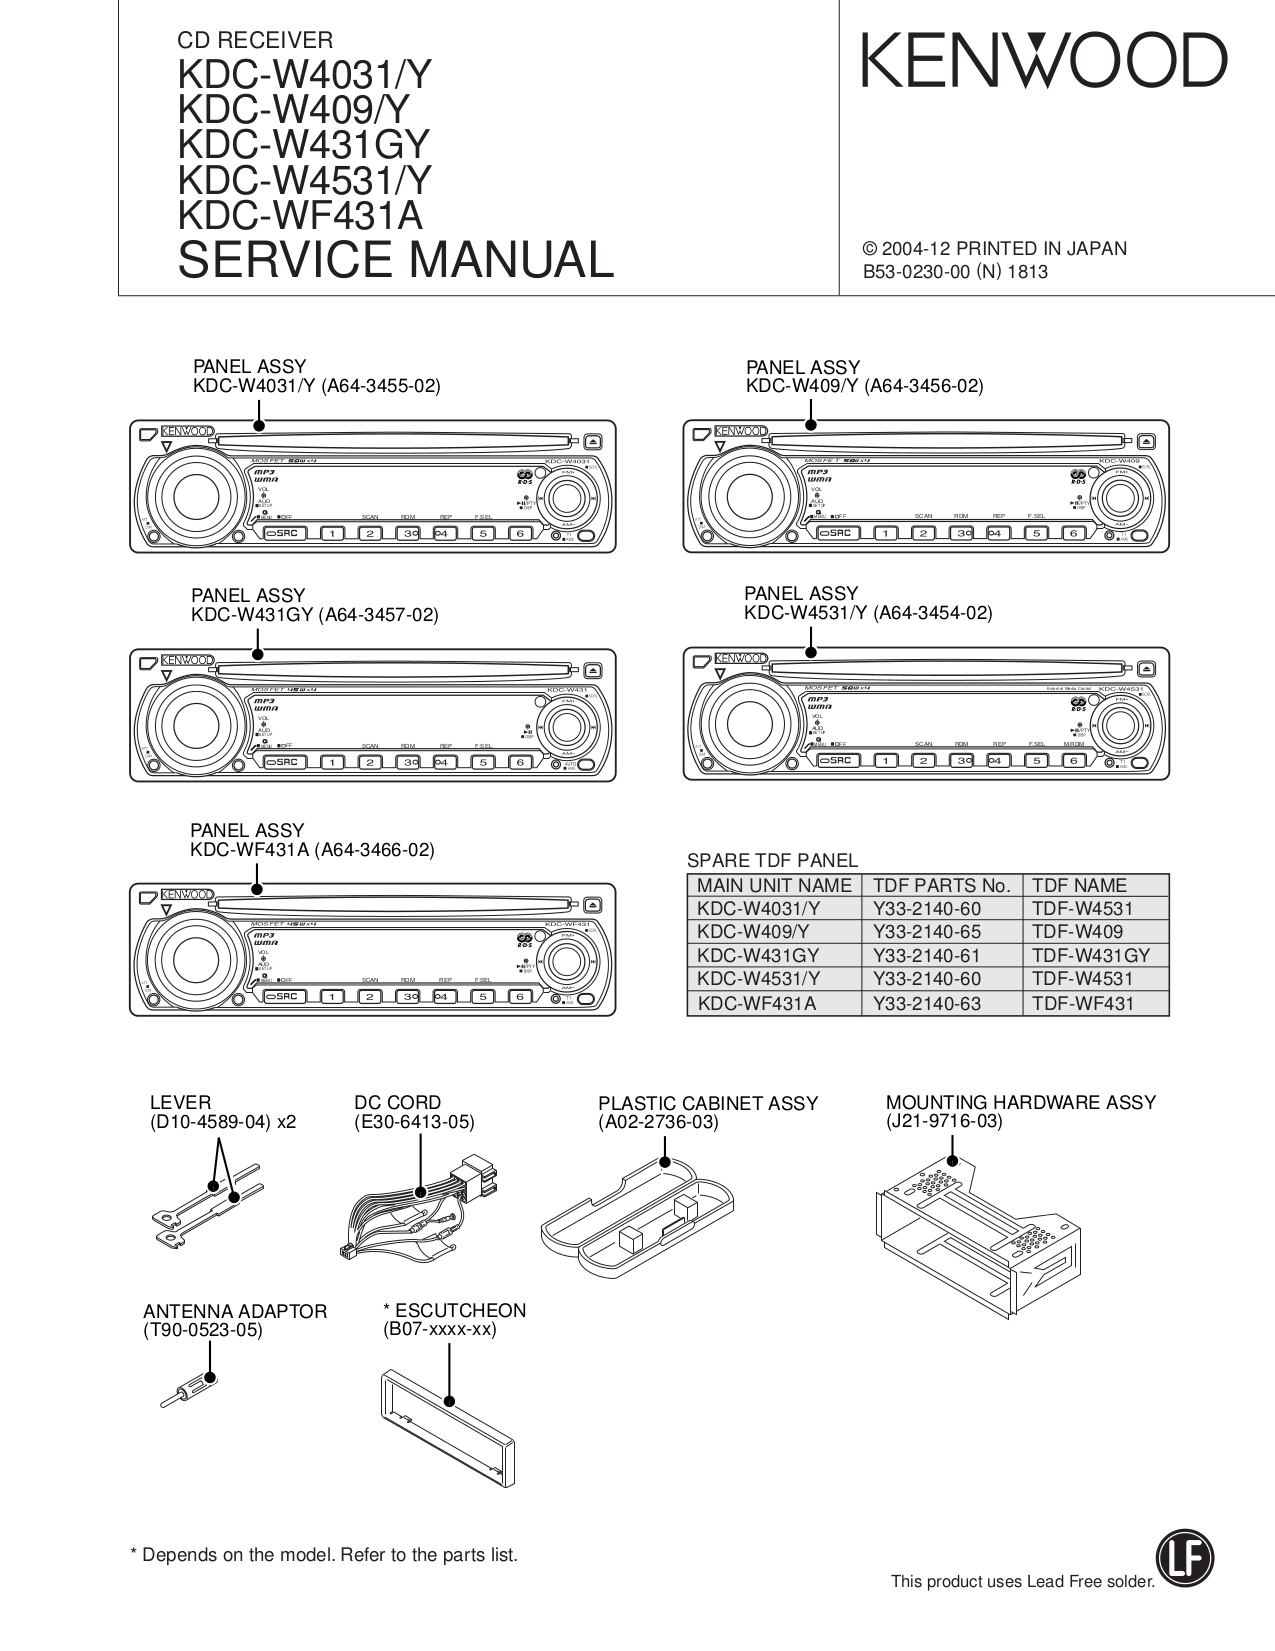 Kenwood Kdc 222 Wiring Diagram 16 Pin Harness Download Free Pdf For Car Receiver Manual Rh Umlib Com 138